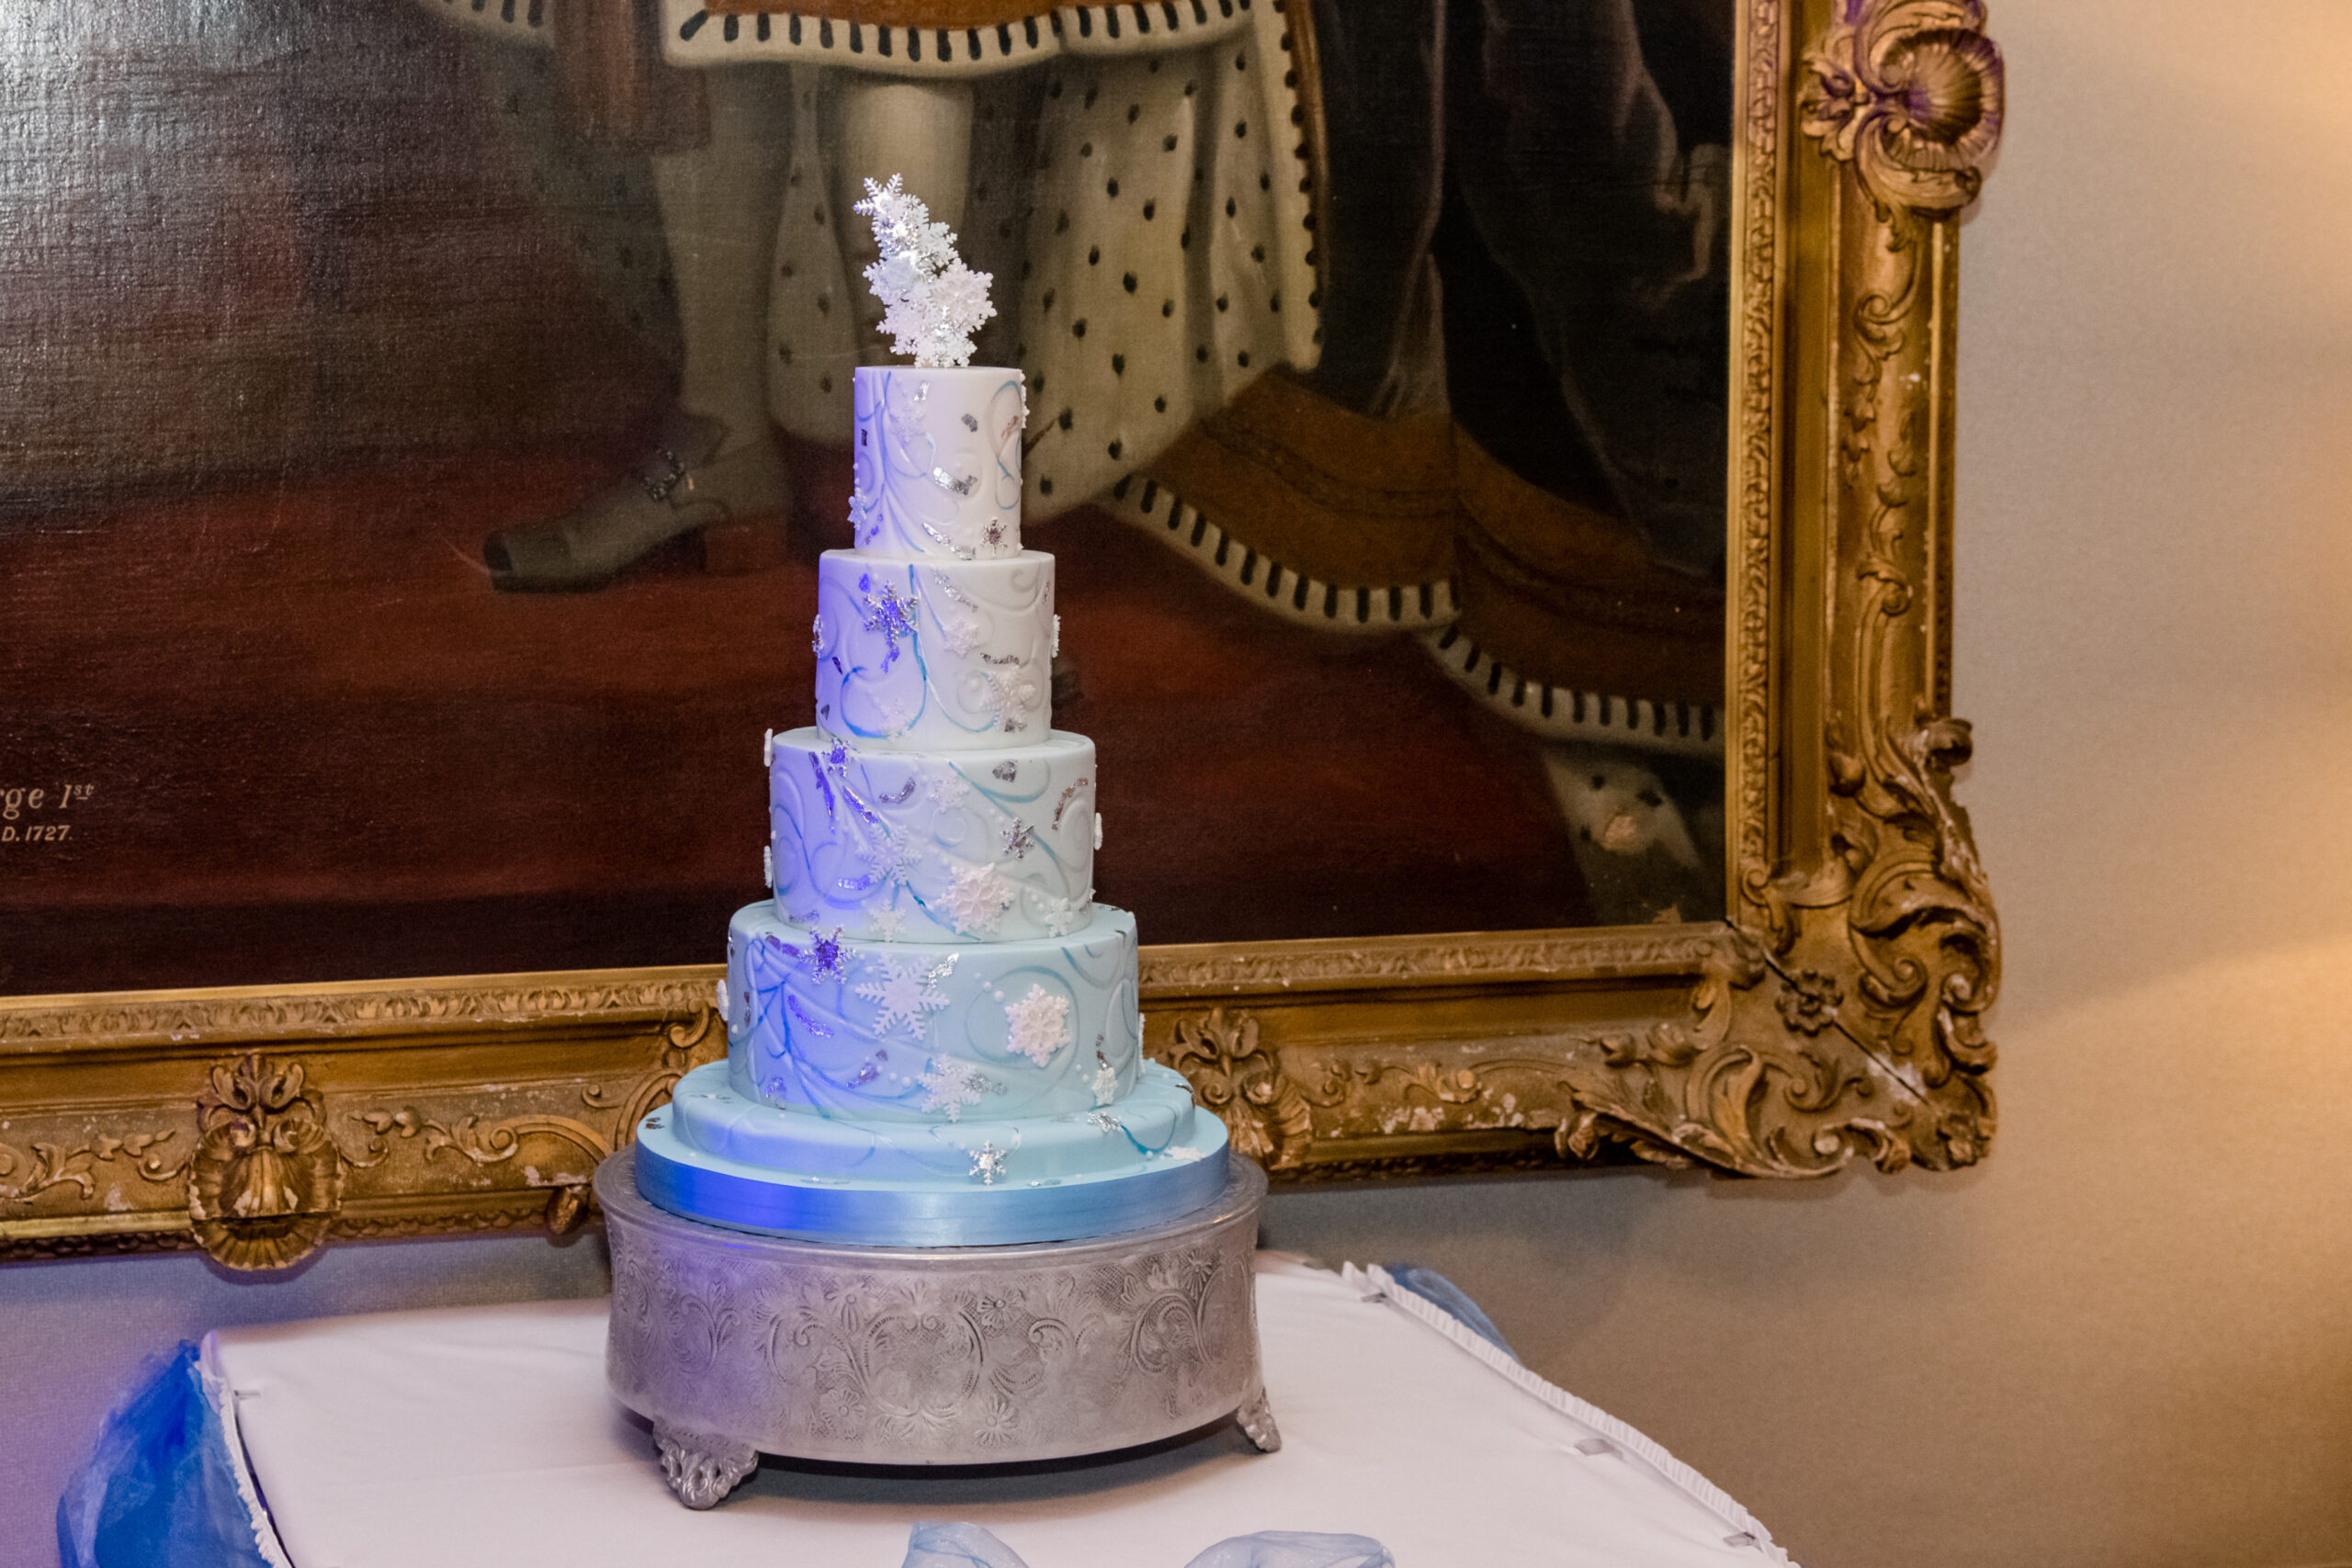 Top Tips For Choosing Your Wedding Cake From The Vintage Cake Fairy